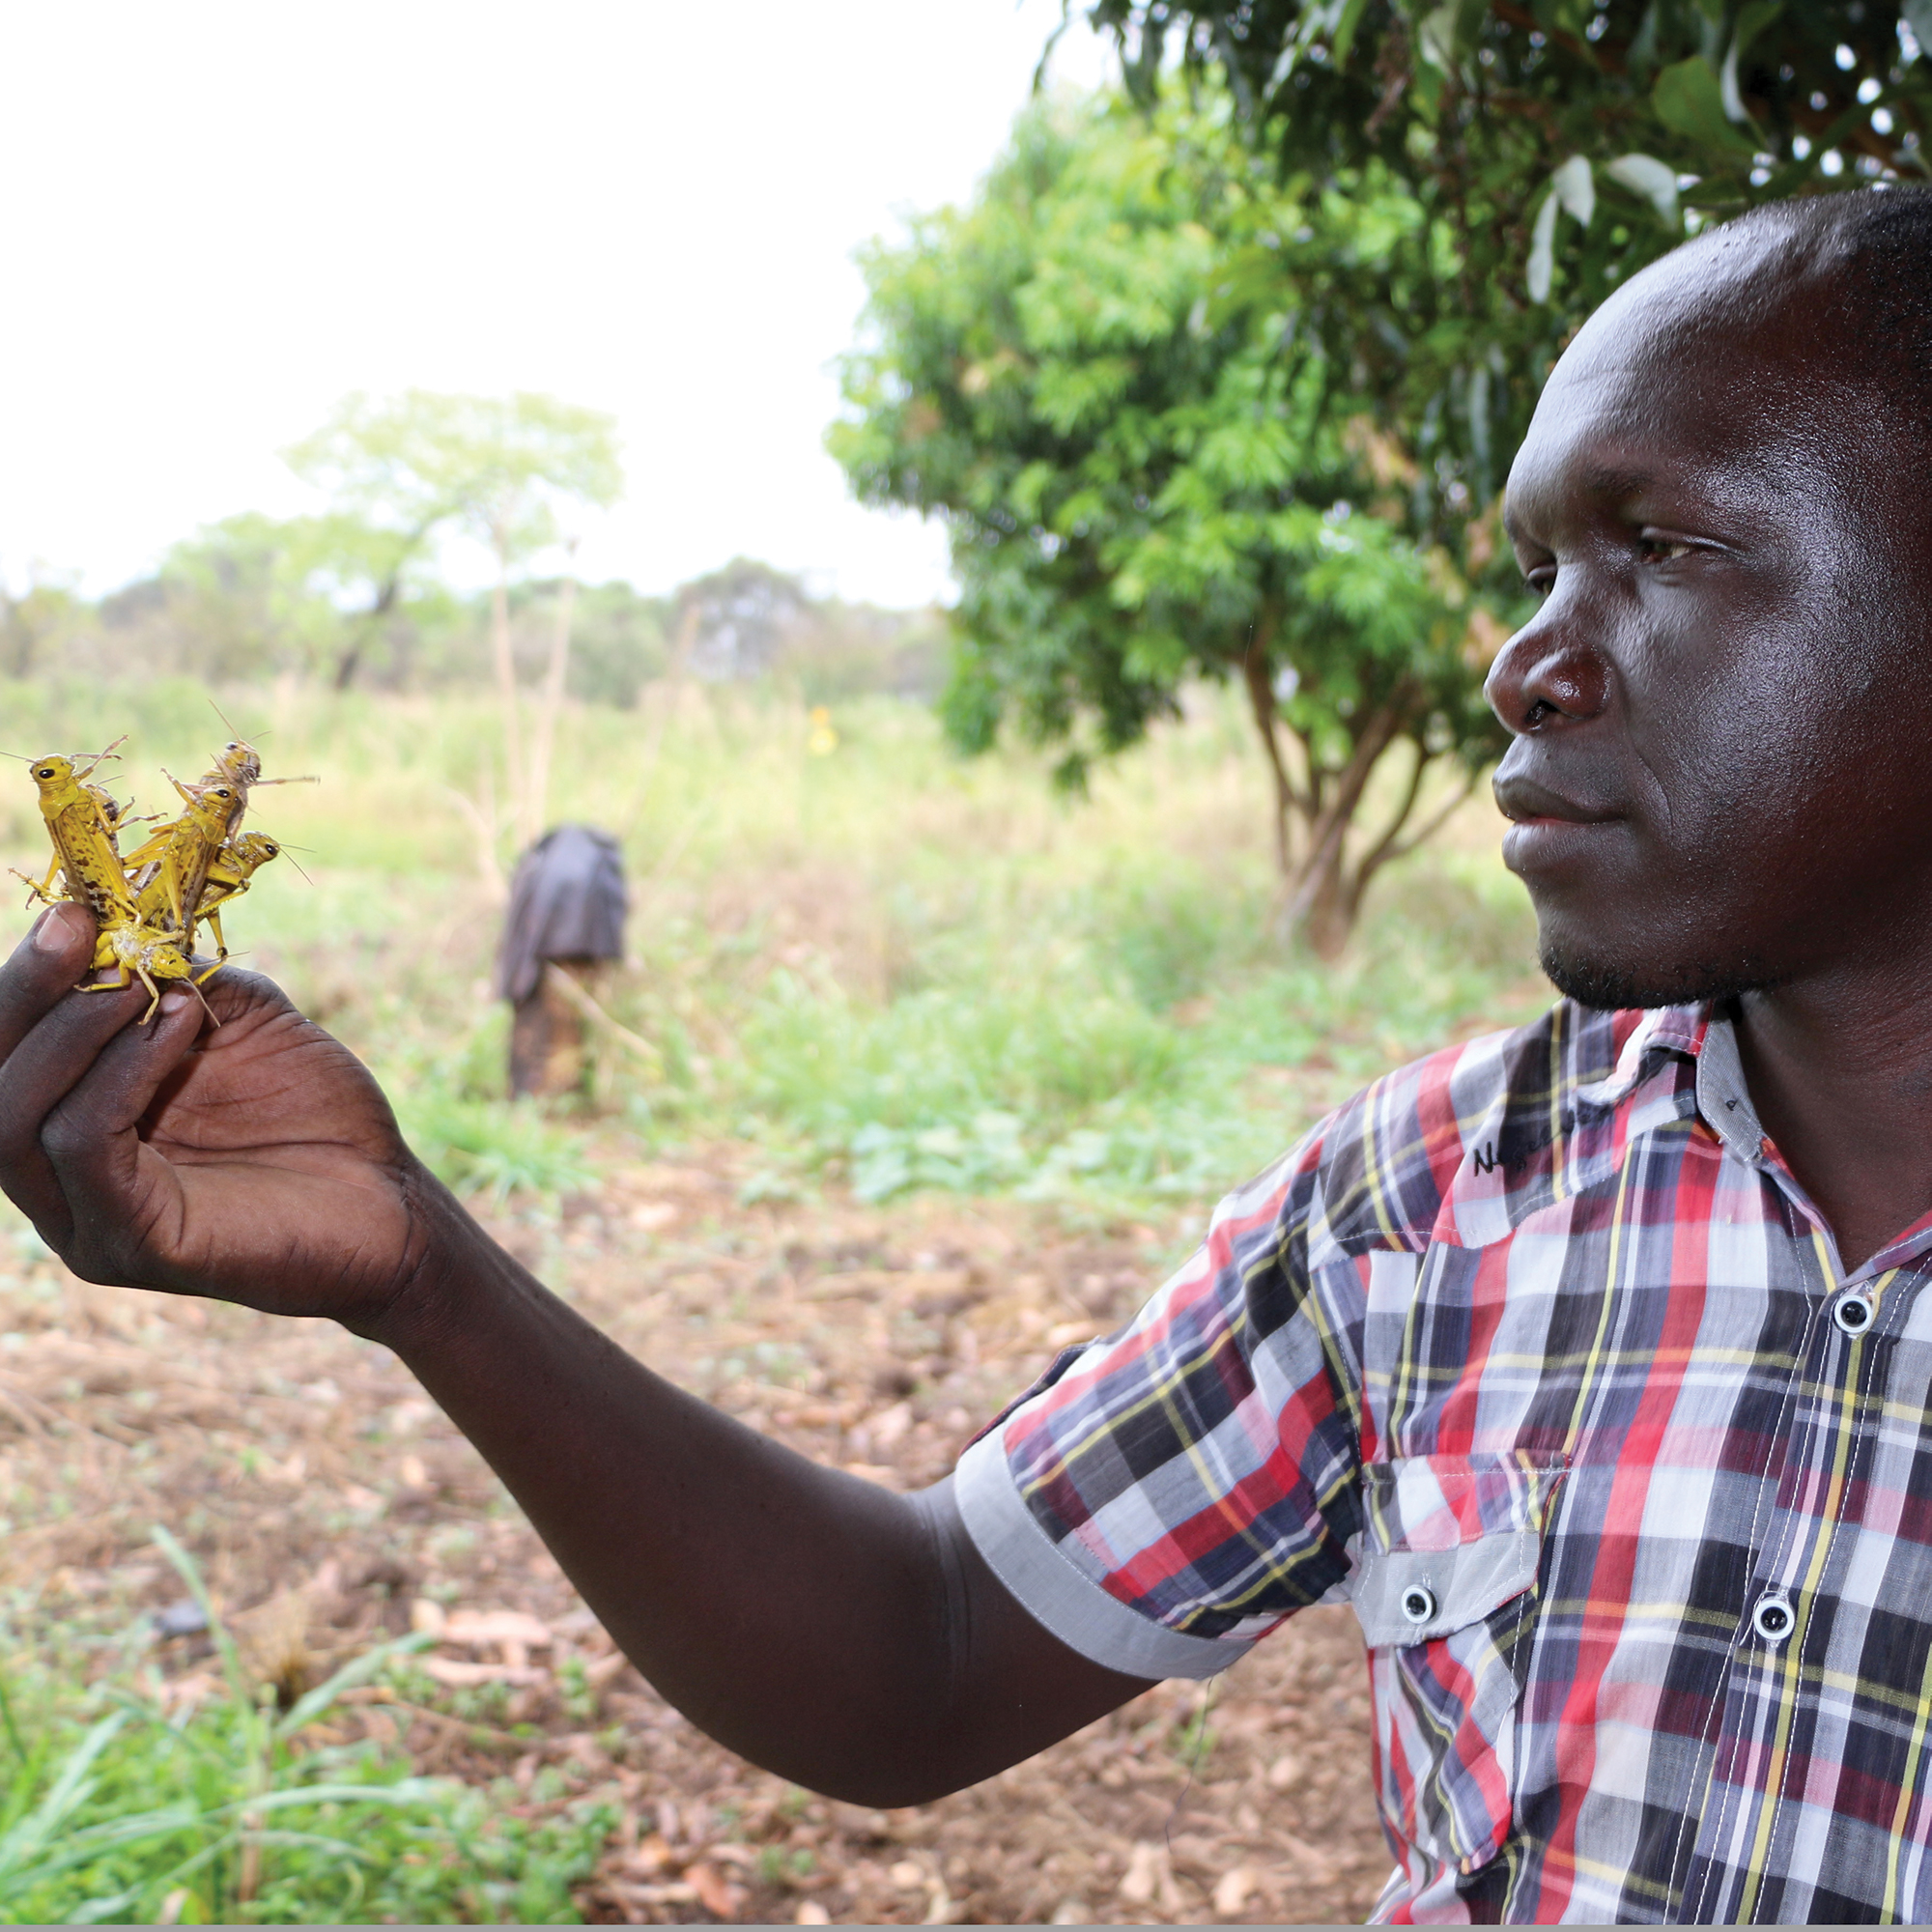 WFP staffer Taban Michael inspects some of the desert locusts in South Sudan. WFP provided vehicles to help response teams conduct surveillance and control.